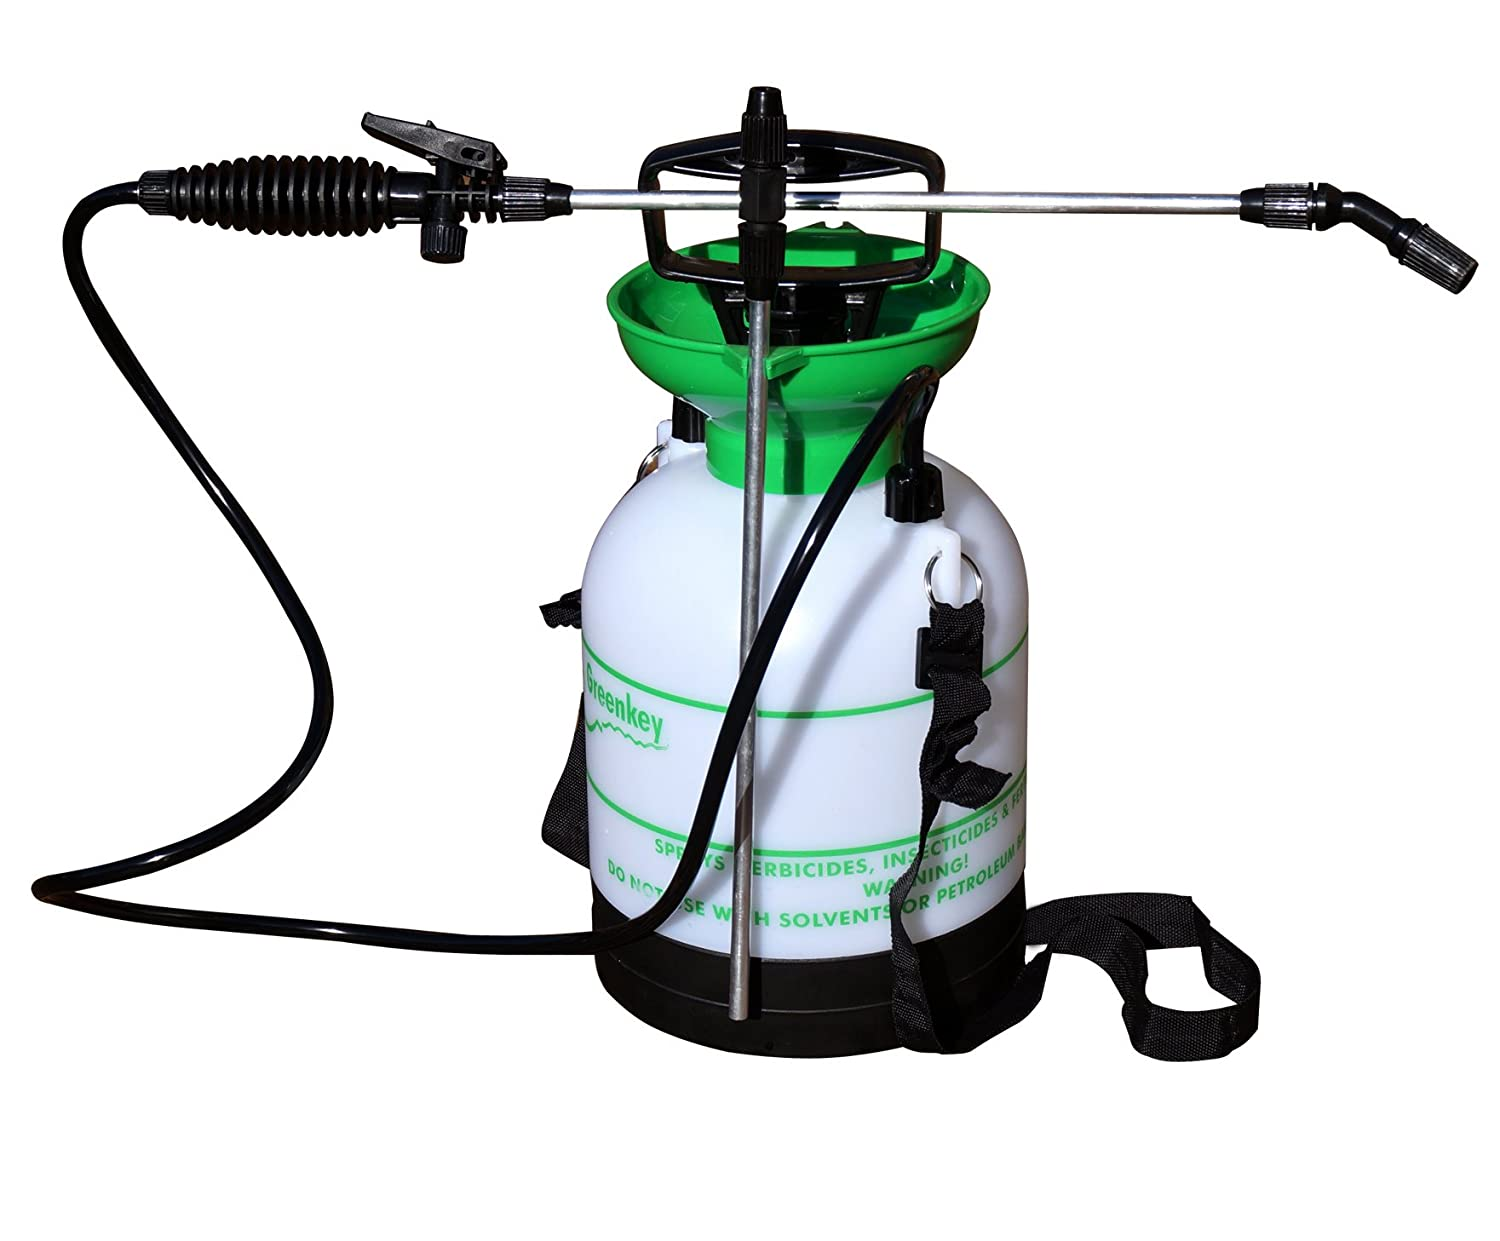 Greenkey 1.5 Litre Hand Pressure Sprayer Greenkey Garden and Home Ltd 121